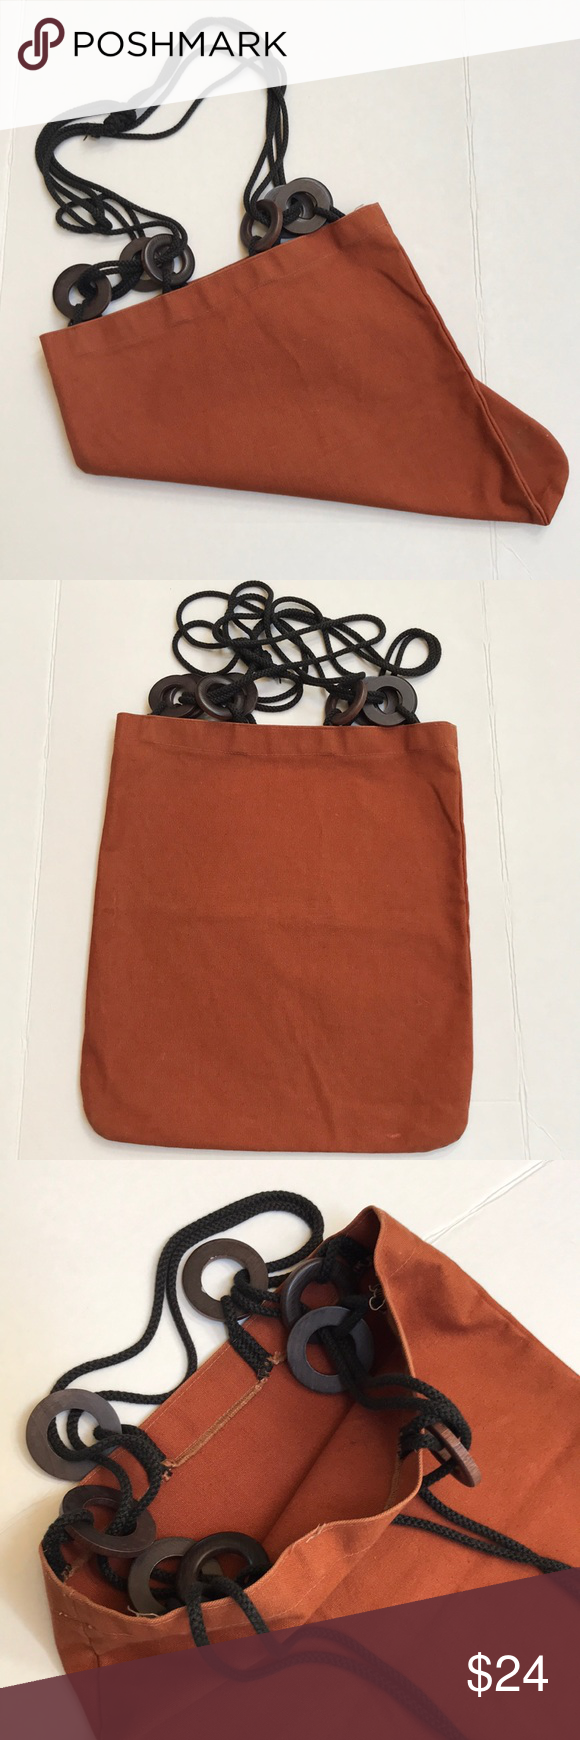 Canvas Market Tote Bag Brown Canvas Market Tote Bag. Wooden circle beads connect bag to the black rope handle. Great bag for the market. Bags Totes #woodentotebag